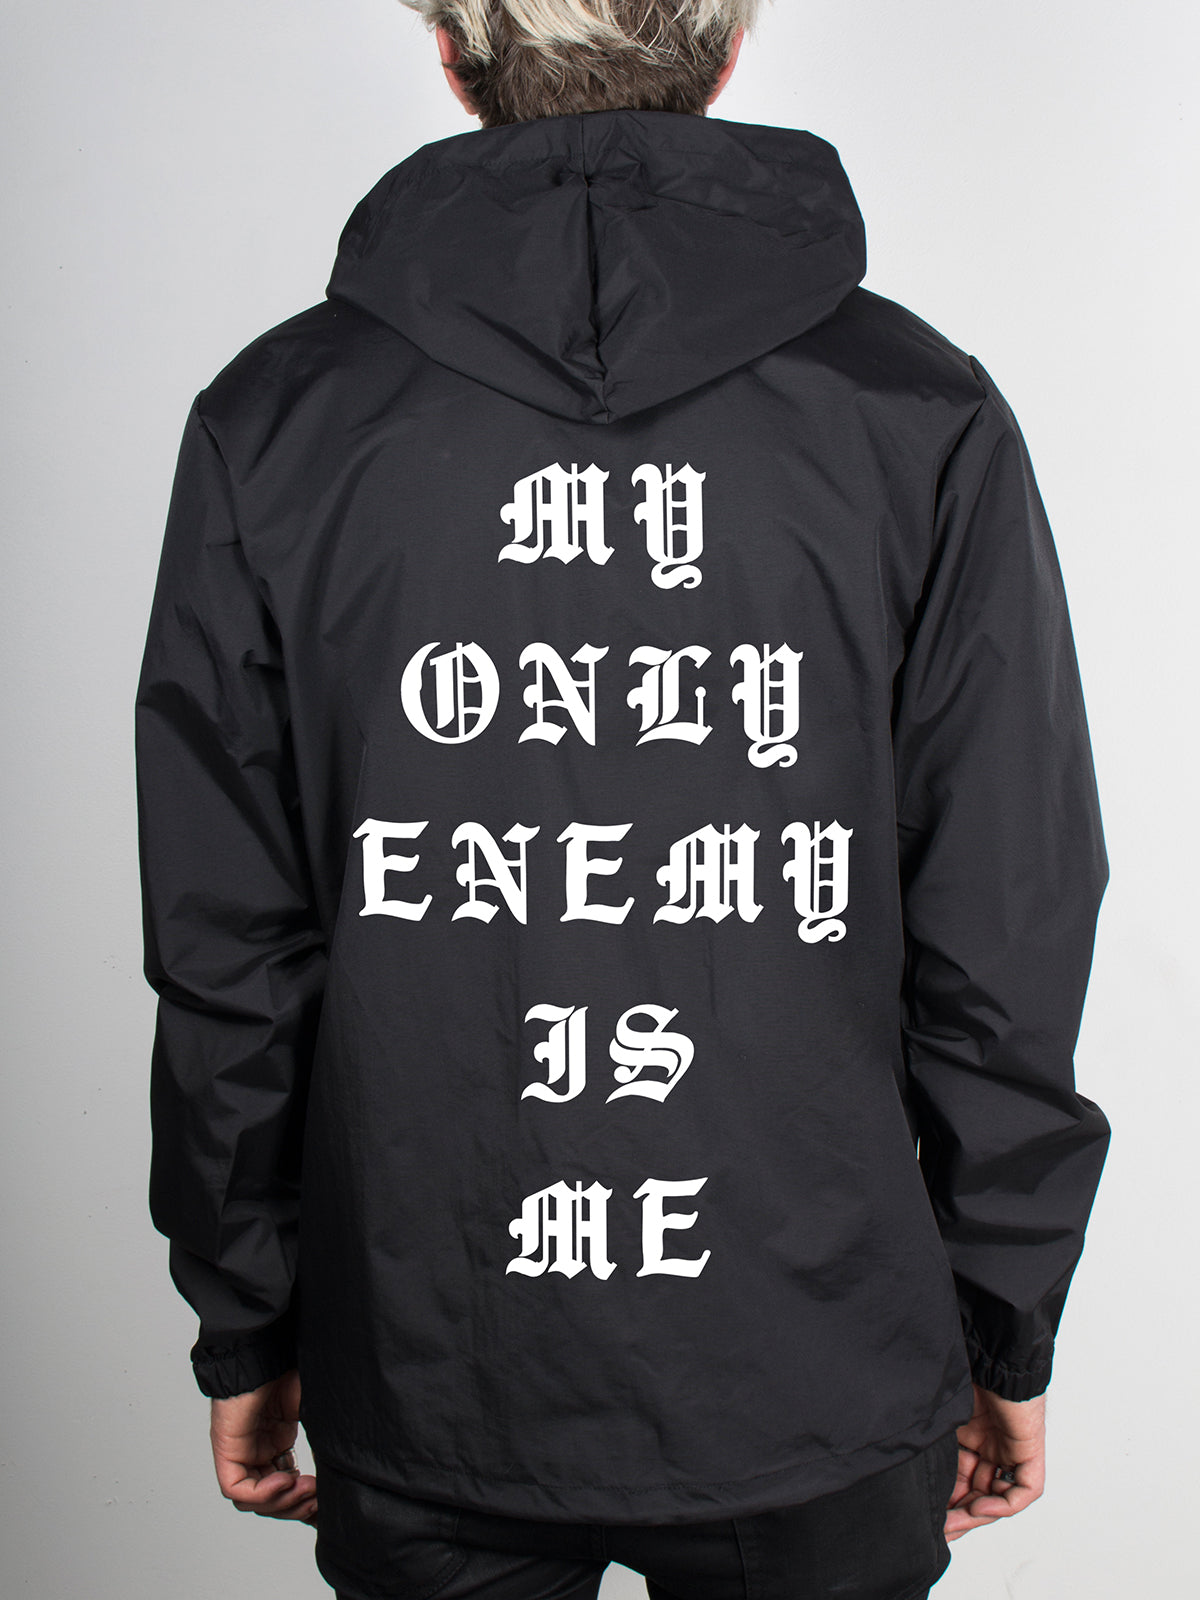 Stick to Your Guns - Enemy All Weather Jacket - Merch Limited